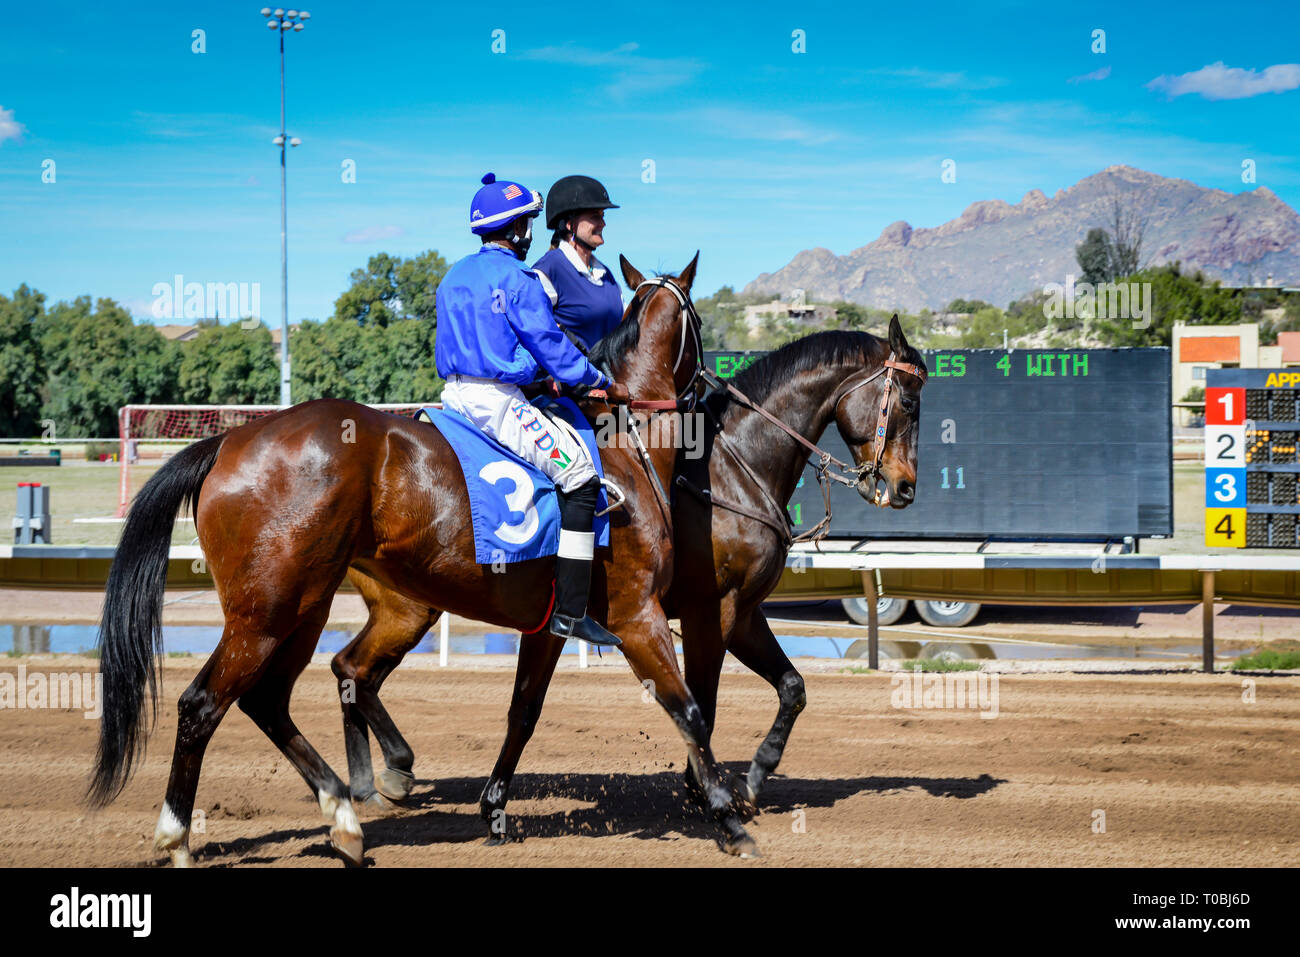 Race Horse And Jockey With Blue Silks Are Escorted By A Female Outrider On The Horse Racing Track At Rillito Park Race Track In Tucson Az Stock Photo Alamy